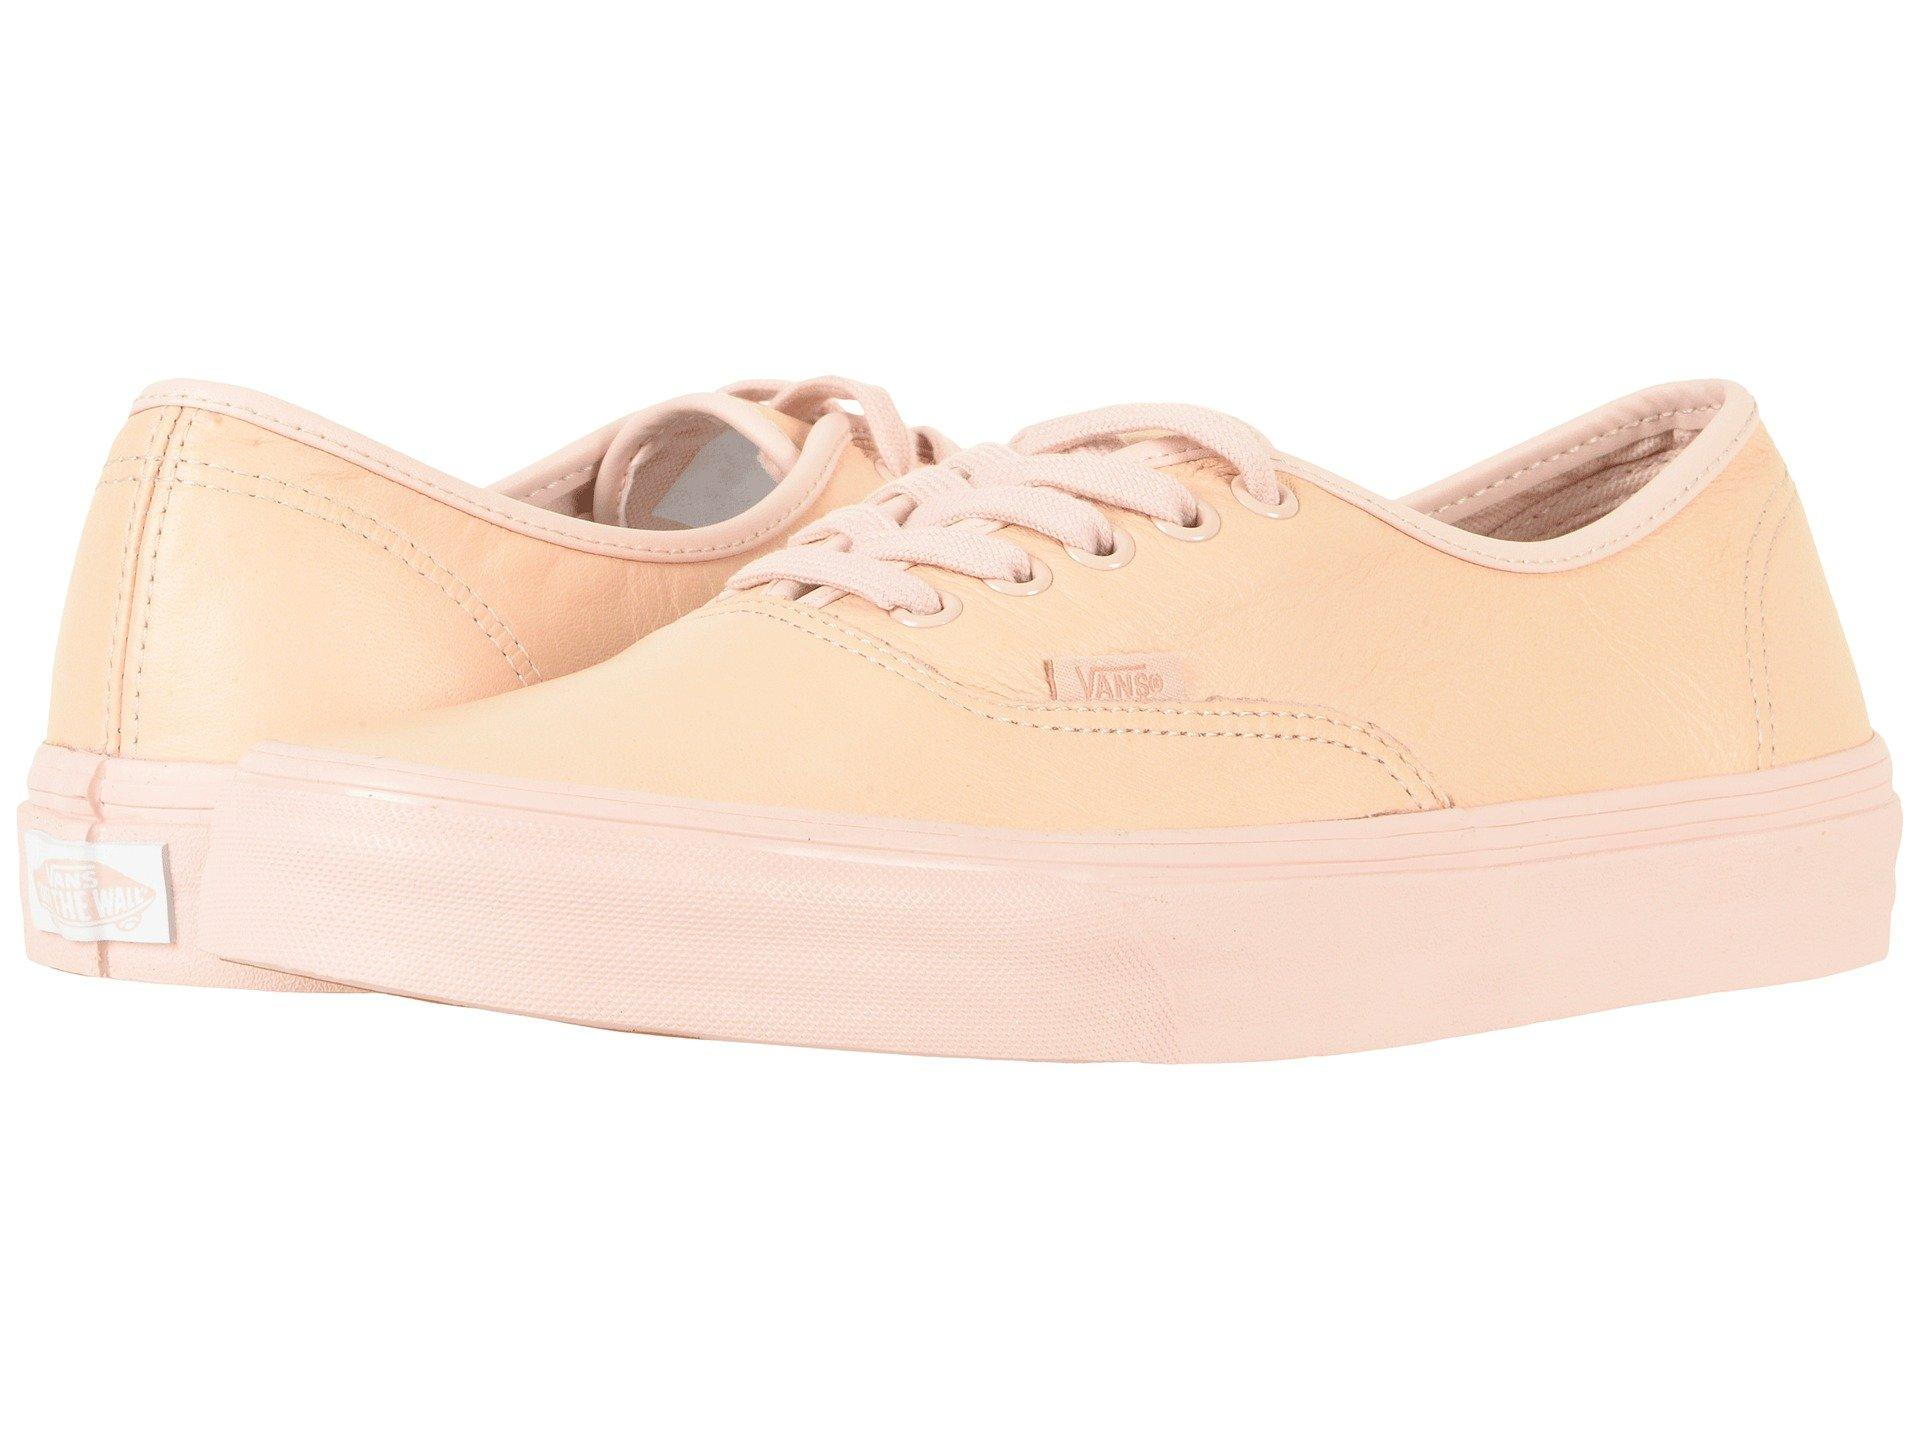 b93496ba78eb54 Vans Authentic™ In (Leather) Mono Sepia Rose